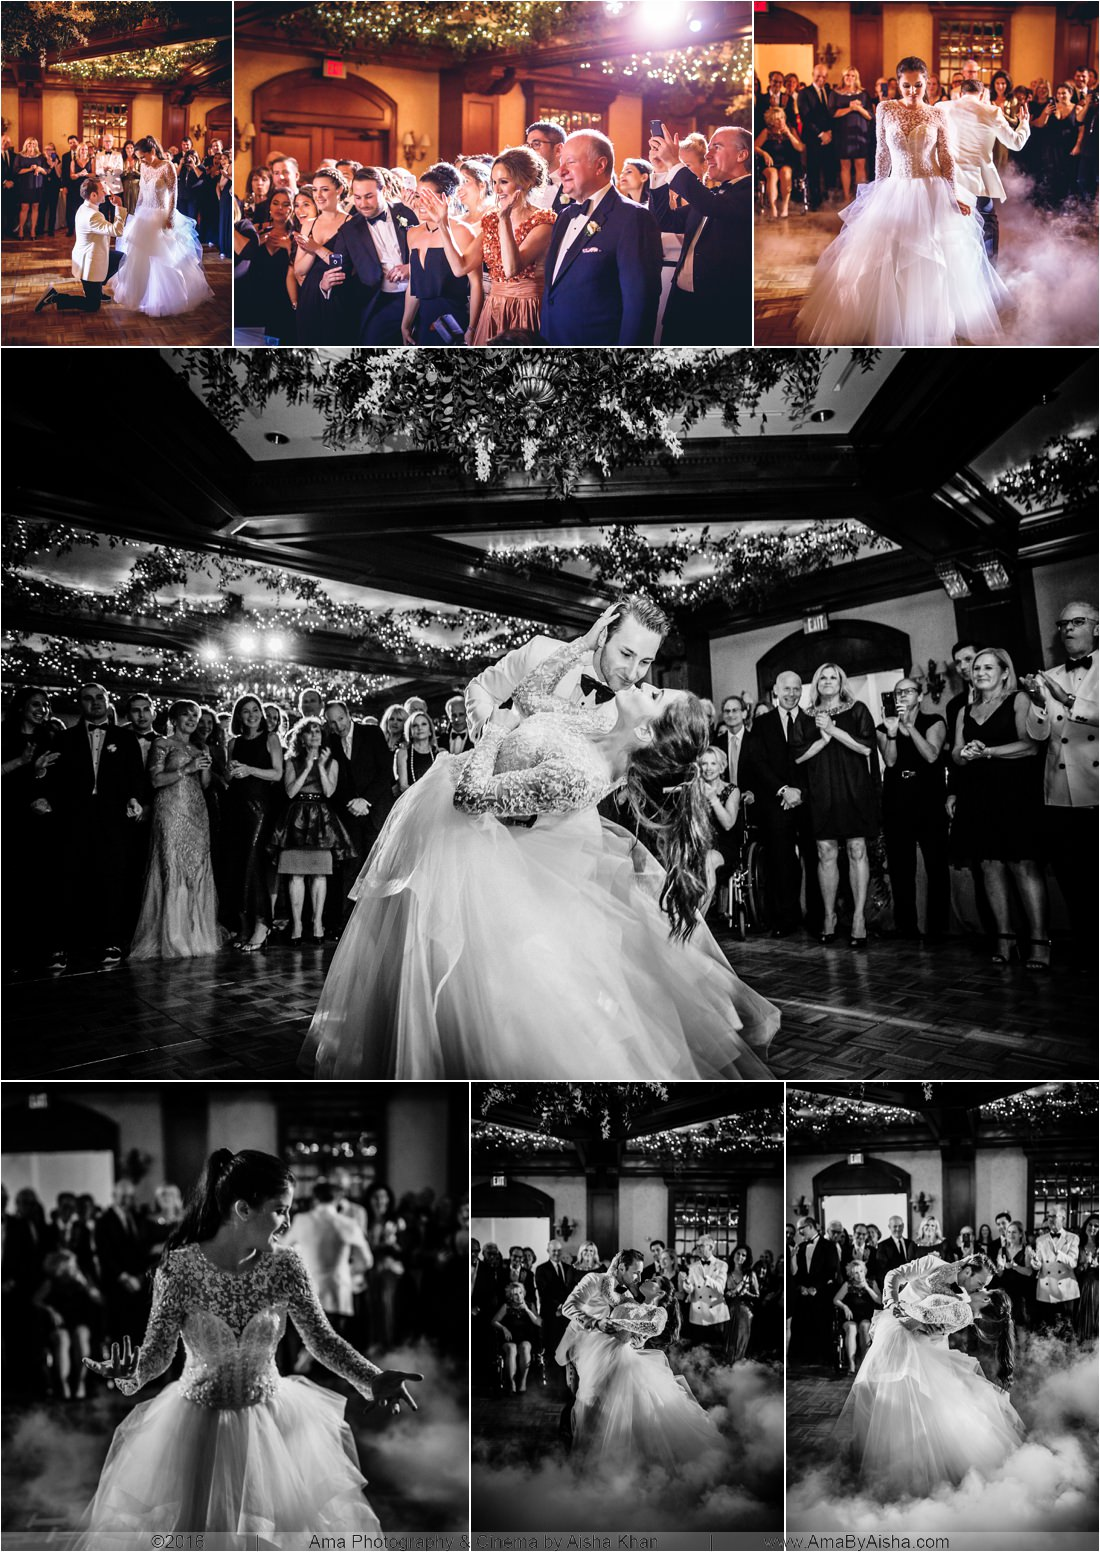 The Houston Wedding